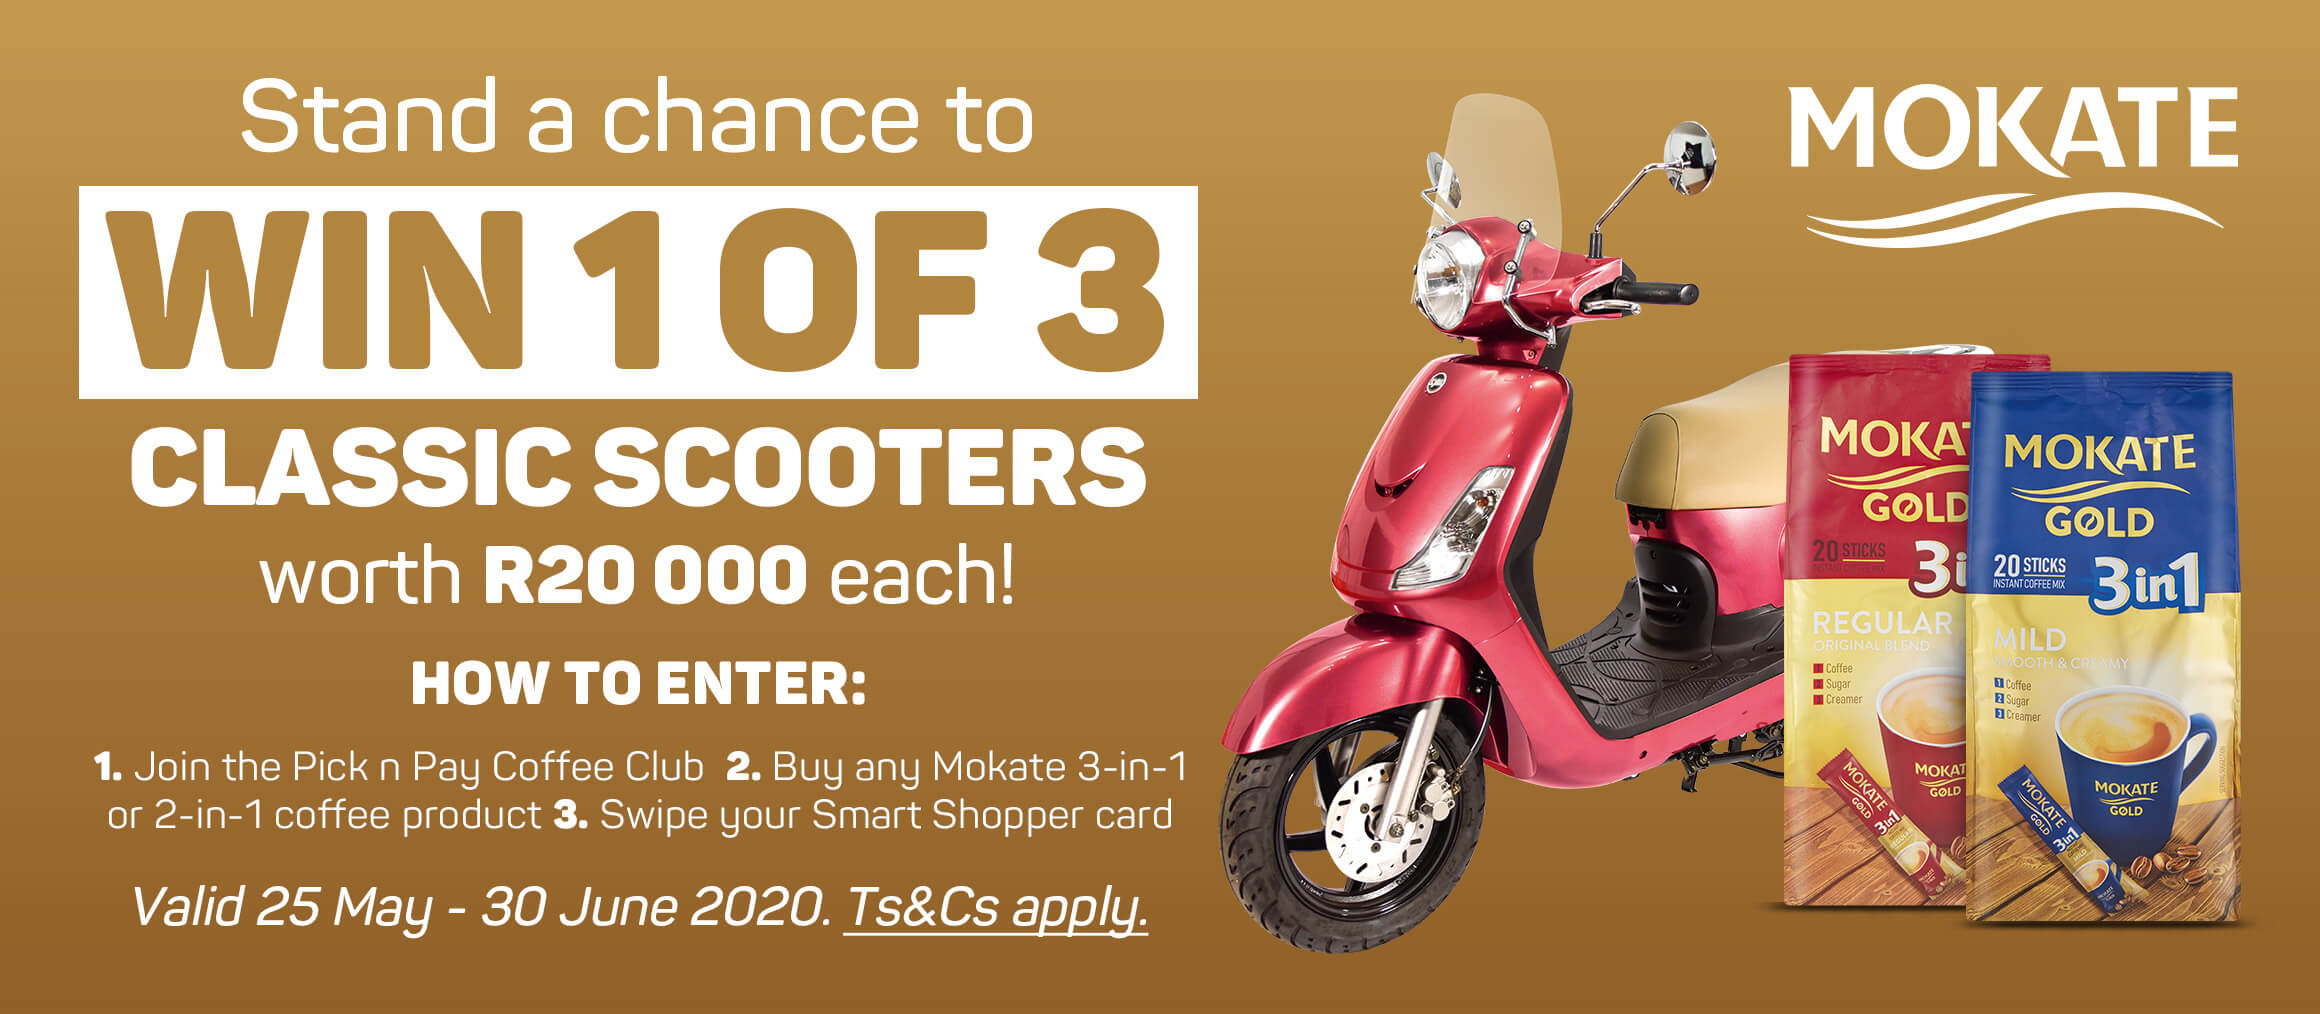 Stand a chance to win 1 of 3 classic scooters worth R20 000 each!